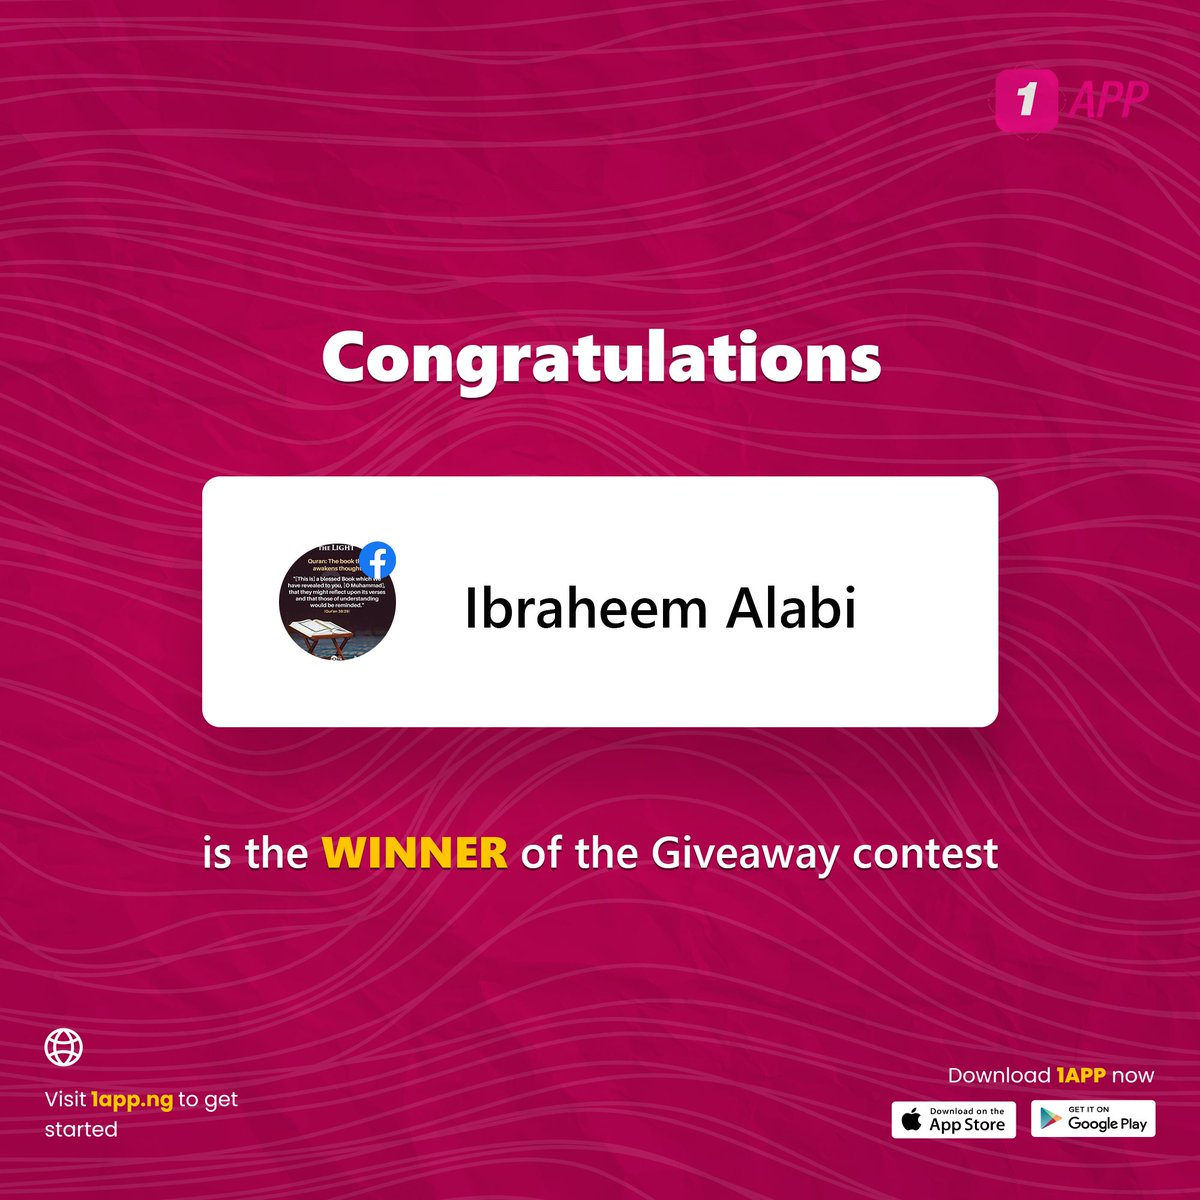 Congratulations to Ibraheem Alabi on winning the 26th of February Giveway Contest!  #1app #1appng #1apponline #easylifeishere #giveaway #wednesdaymotivation #winner #Congratulations #1appnews #1appinvest